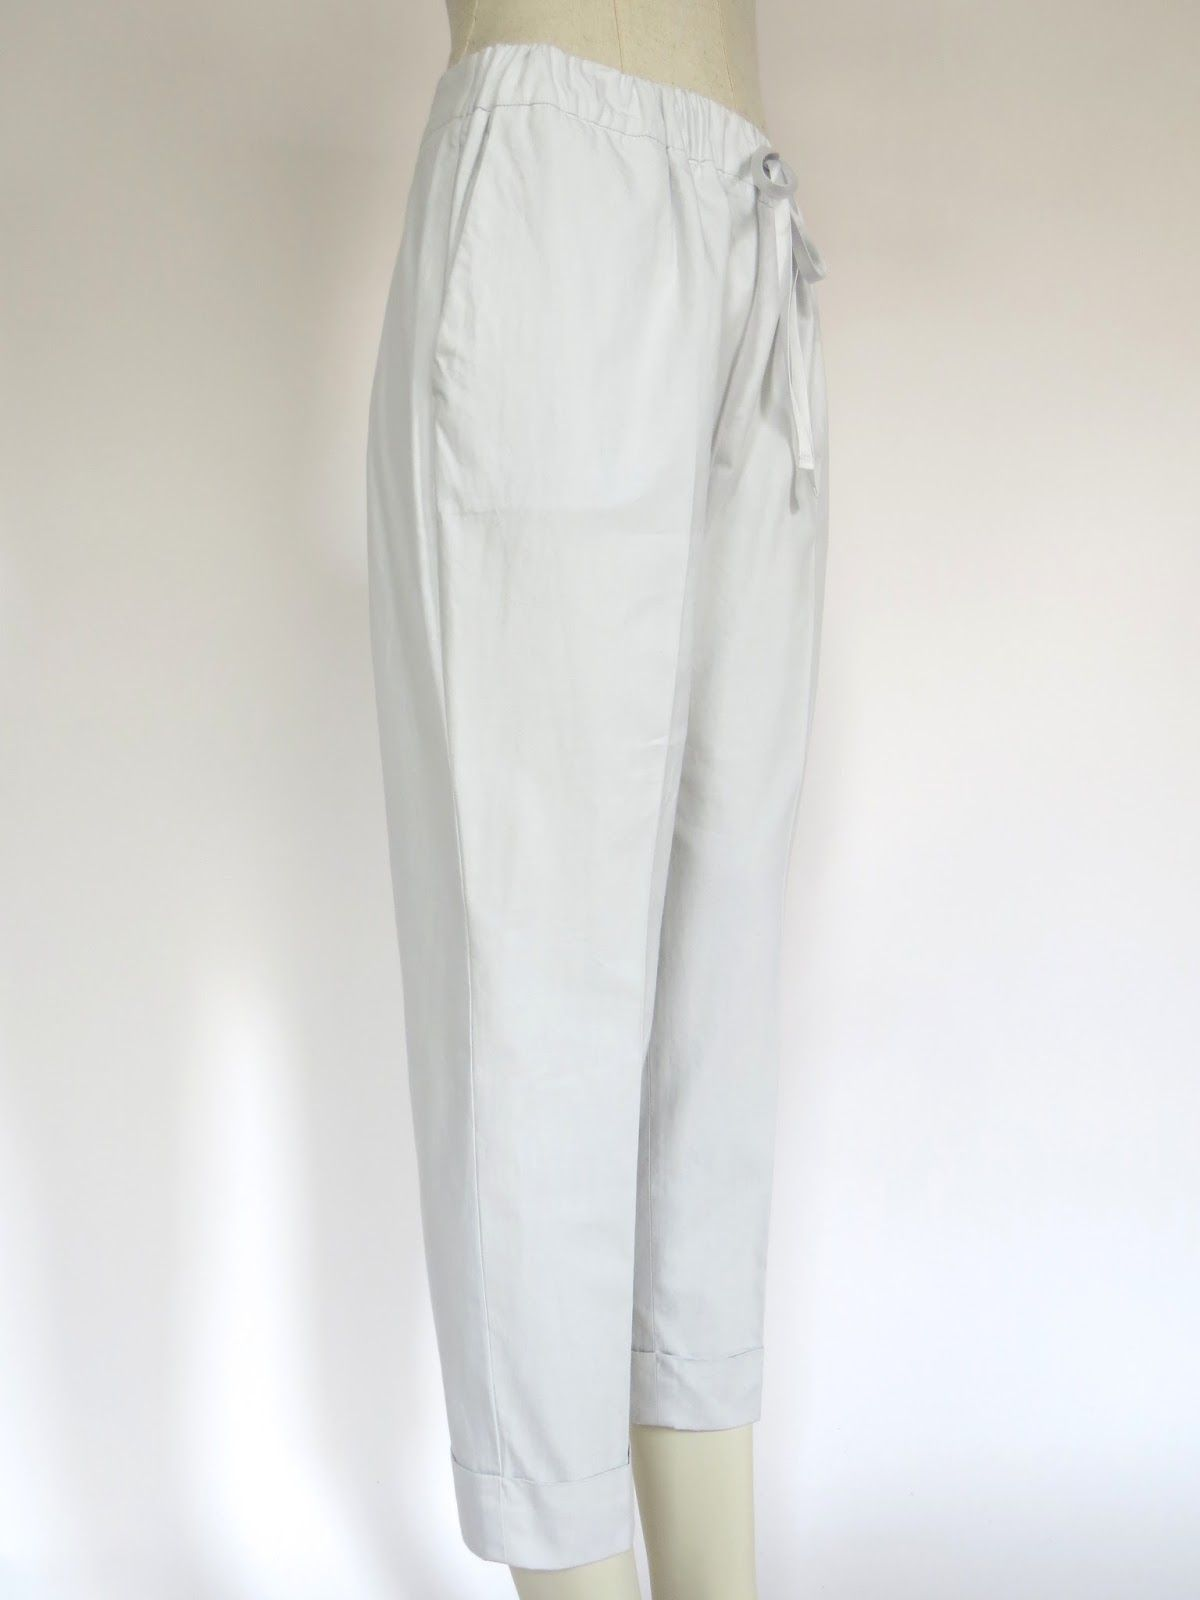 Slender drawstring pants with deep cuffs : WORTHWHILE